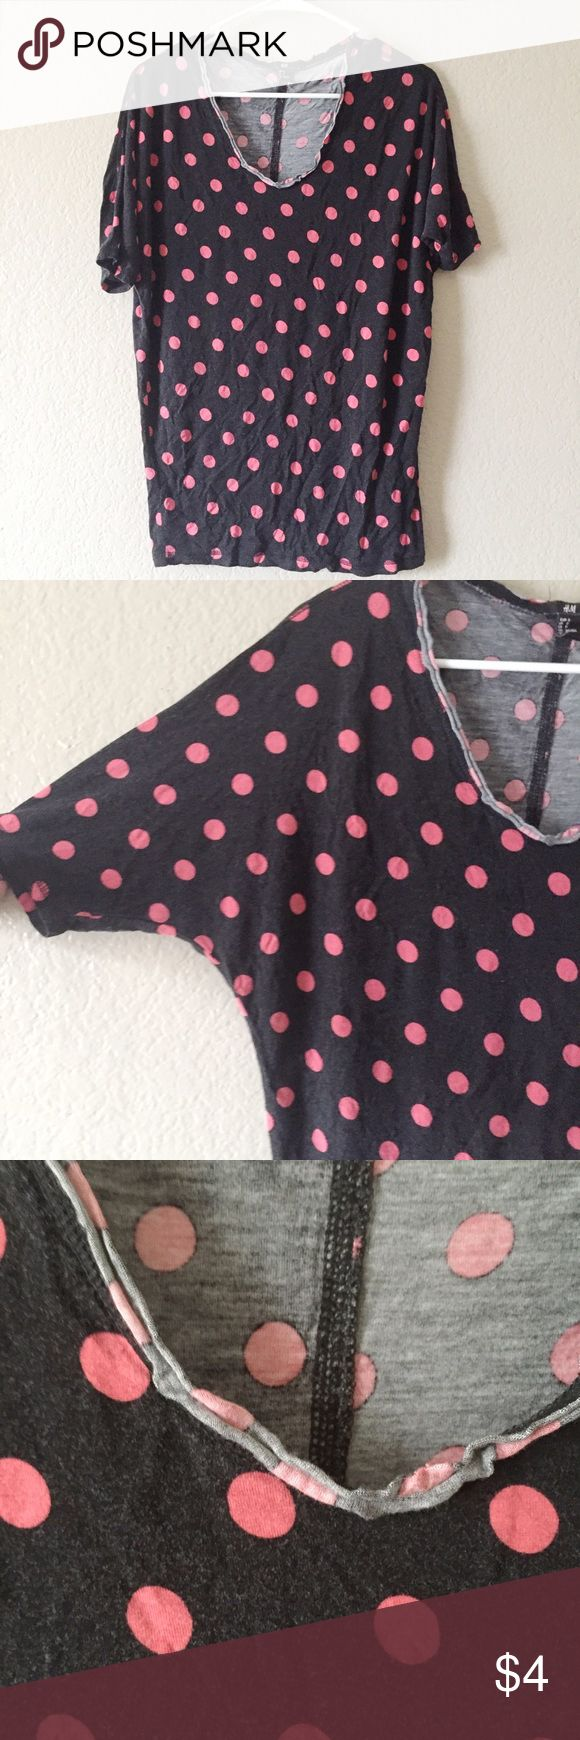 H&M Batwing Polka Dot Top H&M pink polka dot blouse with batwing/dollman style, raw edge hemlines and stitching down the back of the blouse, worn for lounge wear and wear shown through fading on shirt, condition apparent on tags H&M Tops